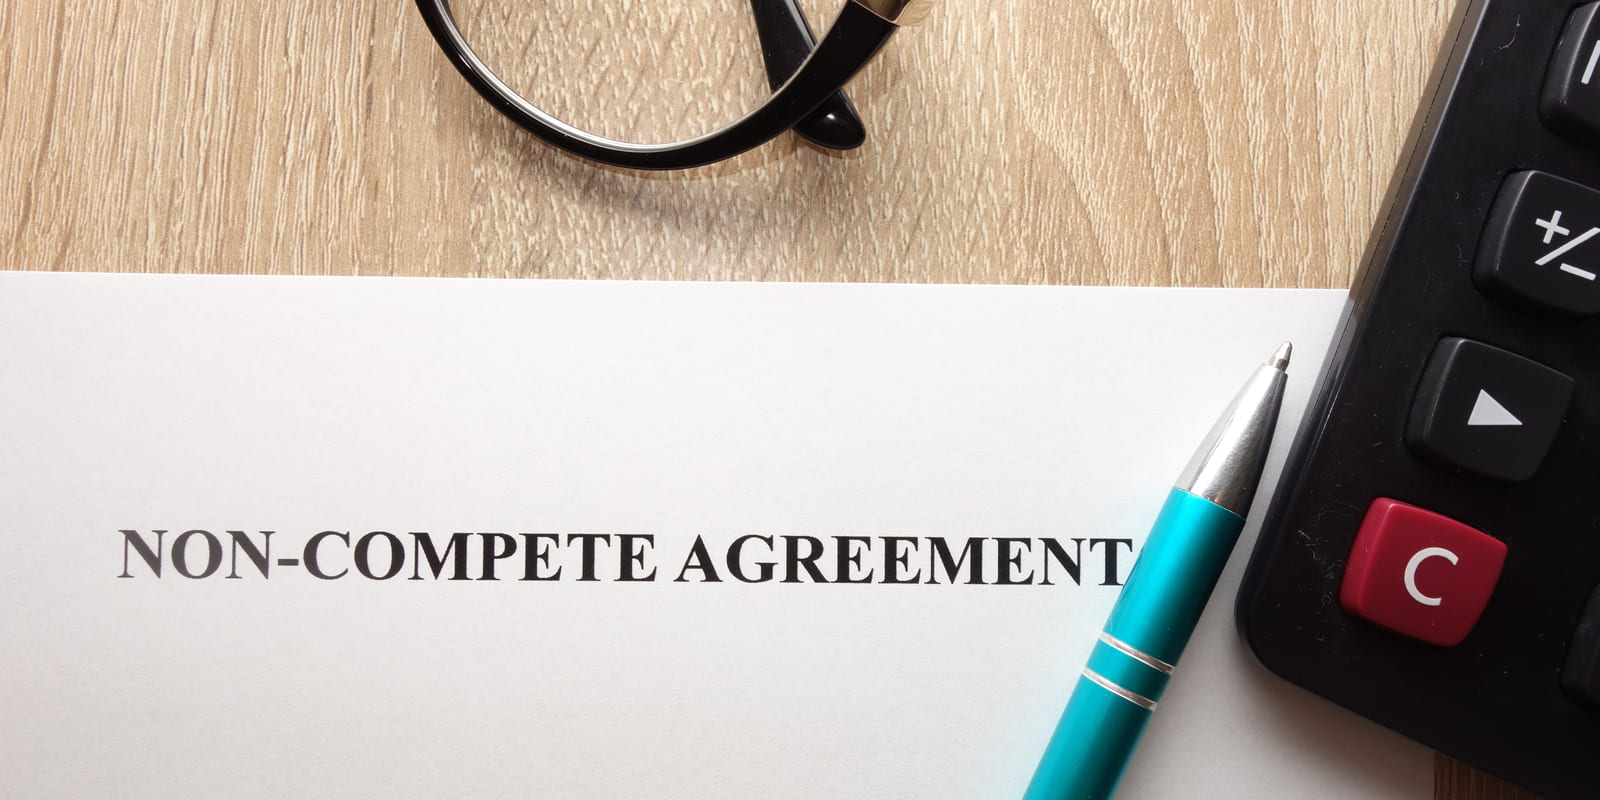 What Happens If You Violate a Non-Compete Agreement